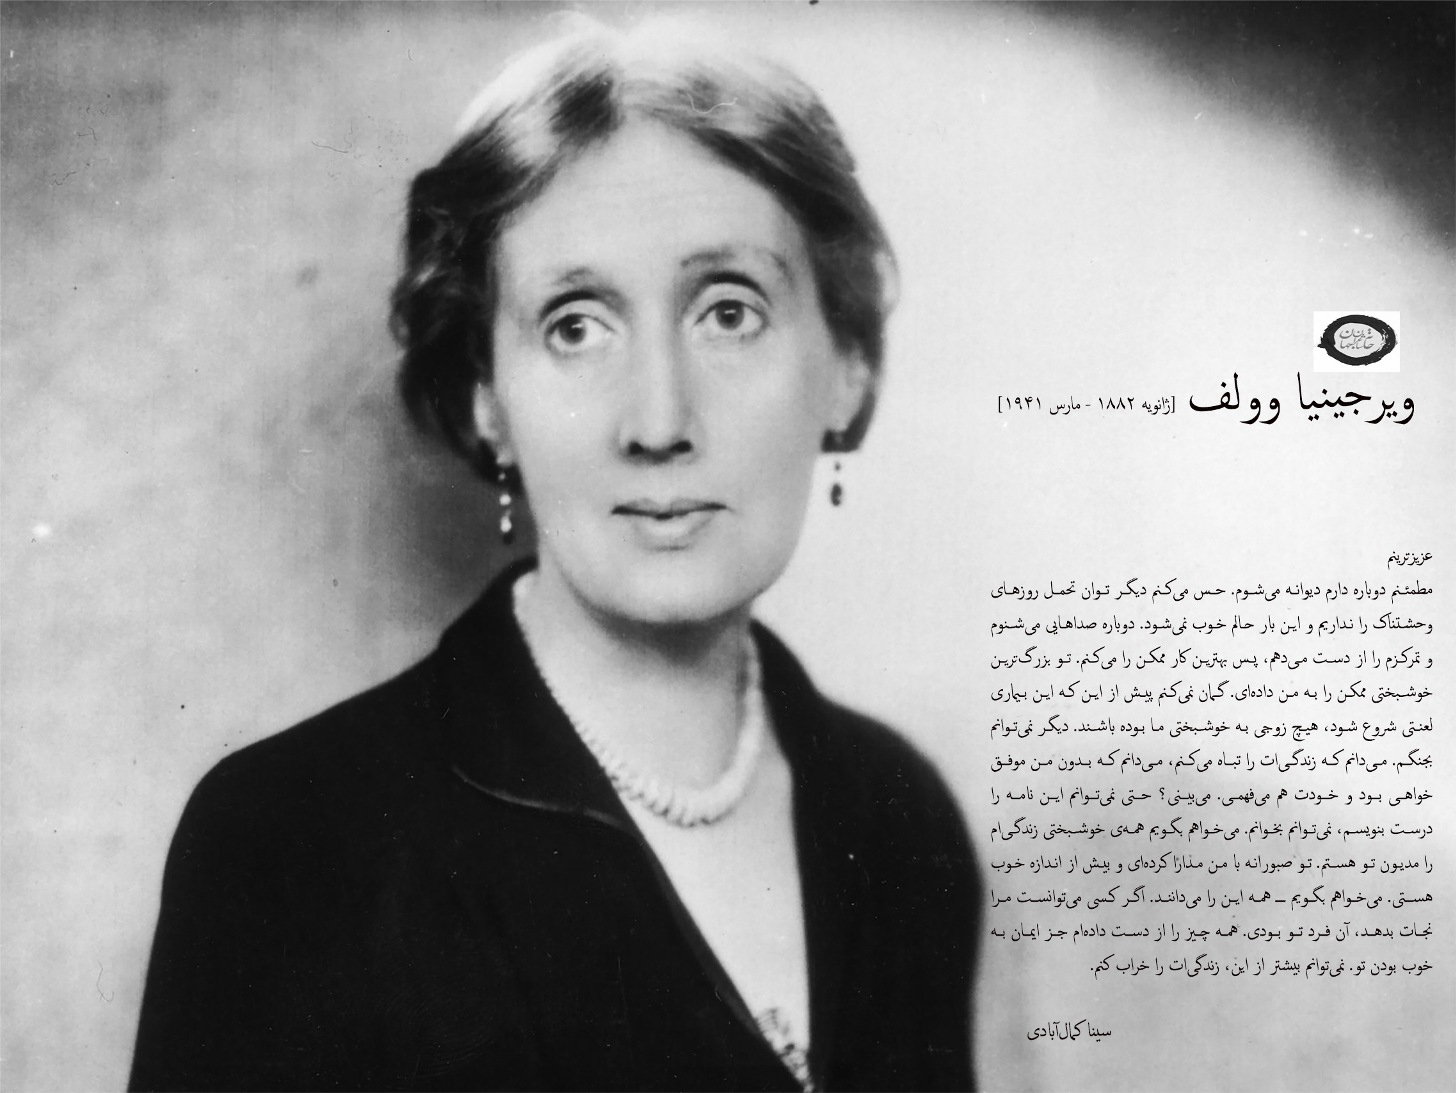 circa 1933: English critic, novelist and essayist Virginia Woolf (1882 - 1941). (Photo by Central Press/Getty Images)